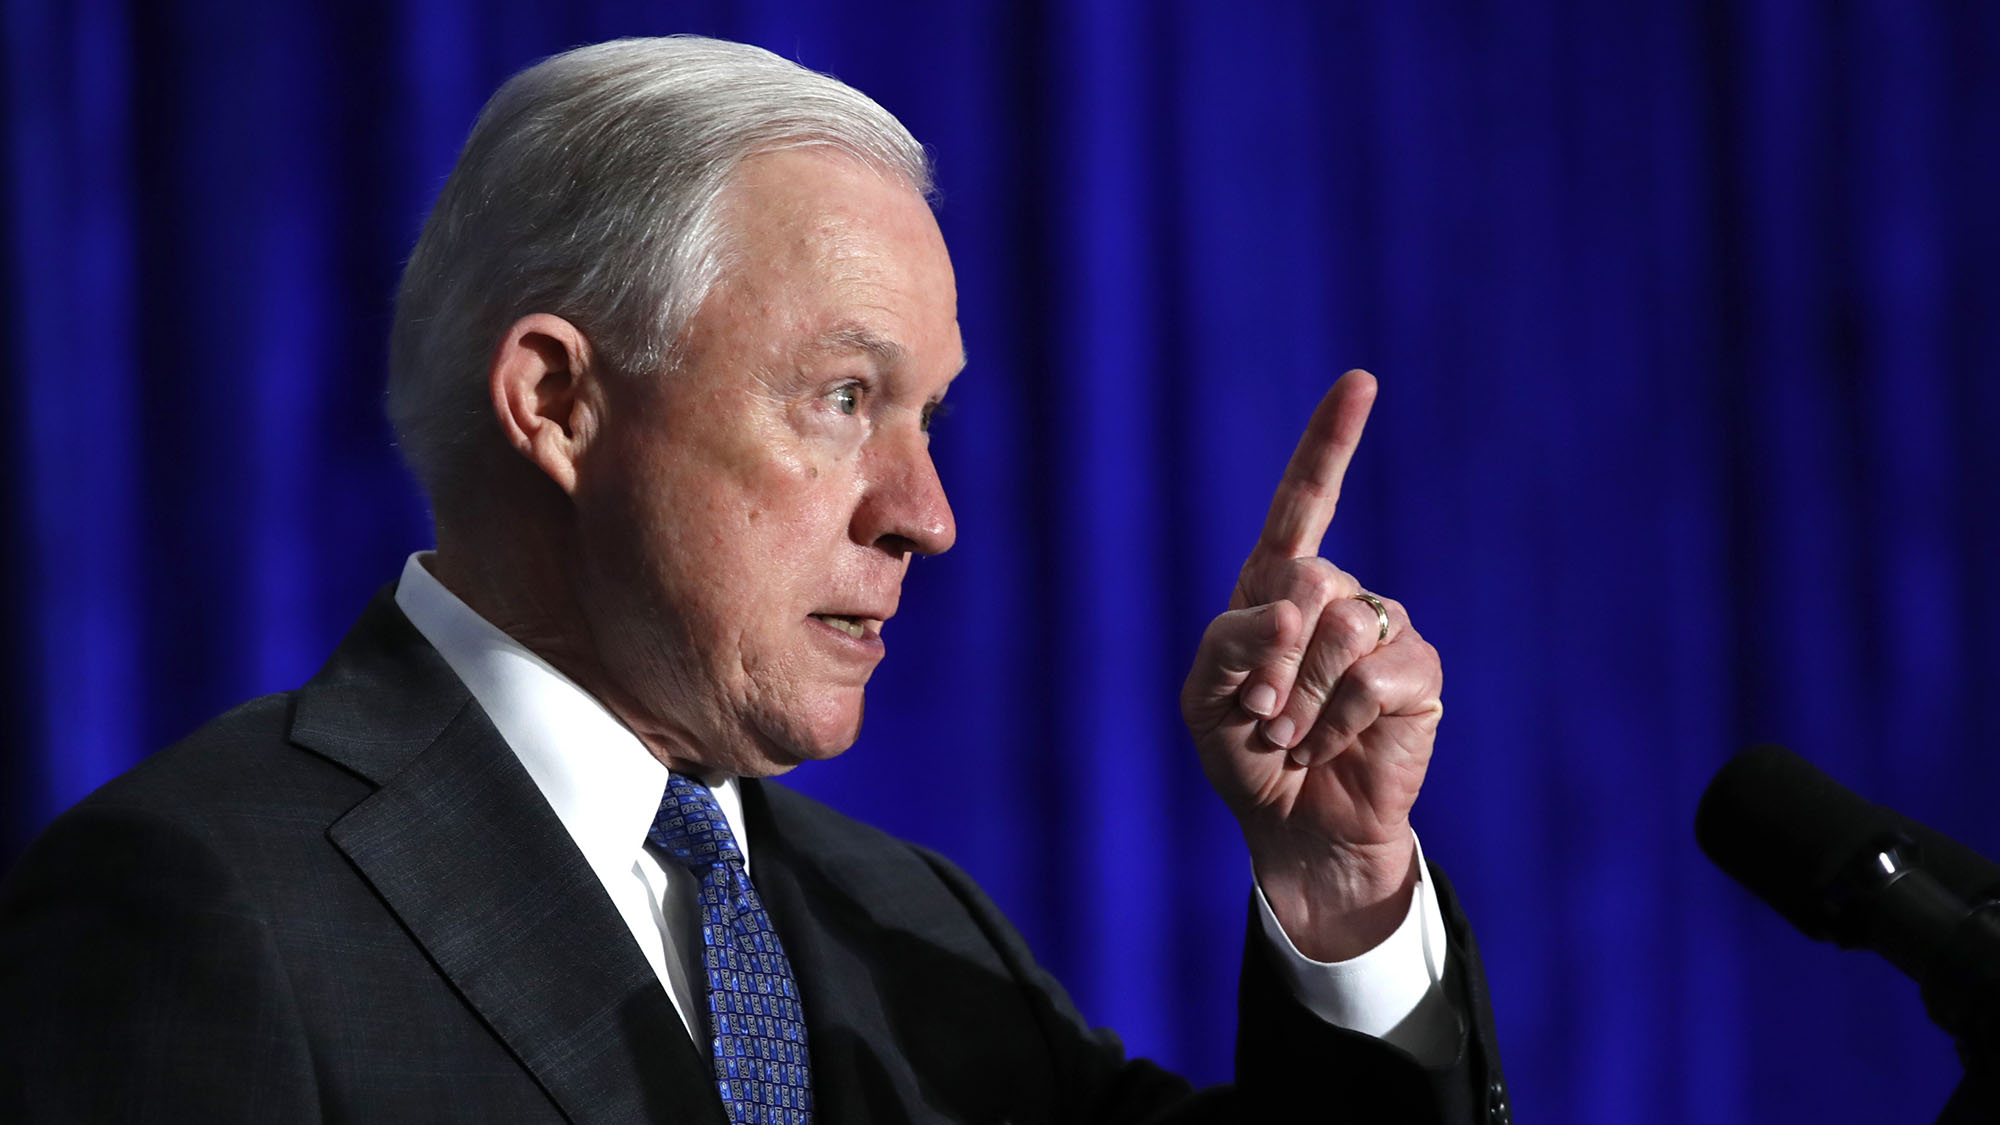 AG Sessions Prepares New Asset Forfeiture Policy for Criminals